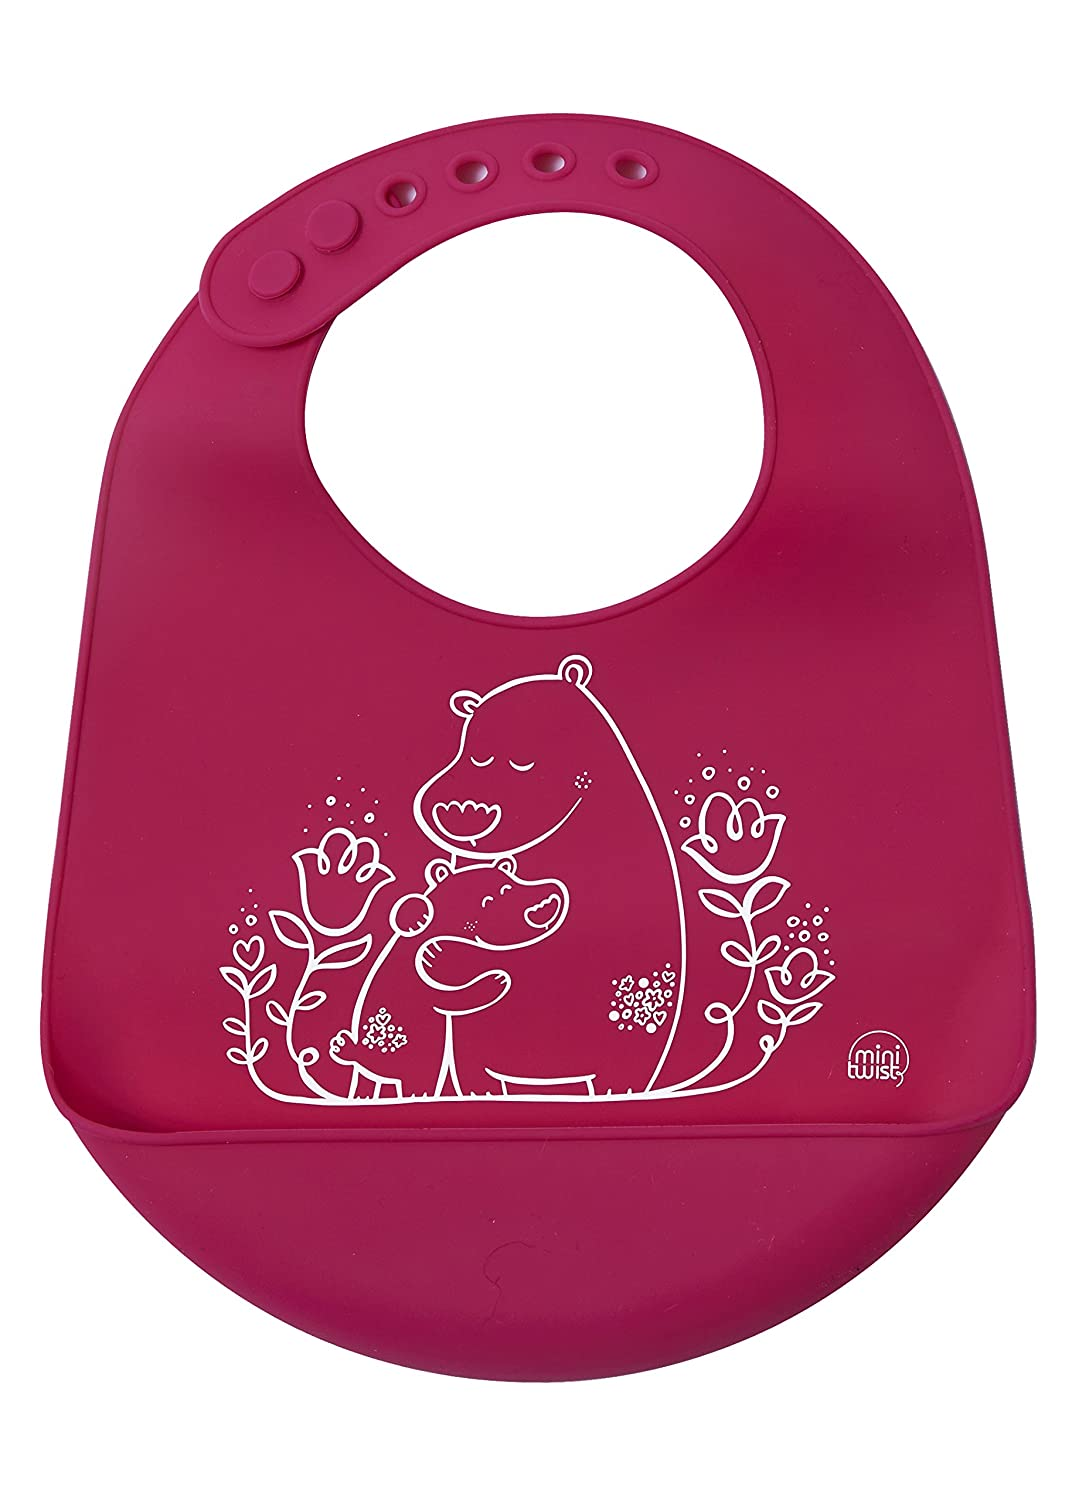 mini-twist Silicone Baby Bucket Bib, Foxes/Green, modern-twist B02